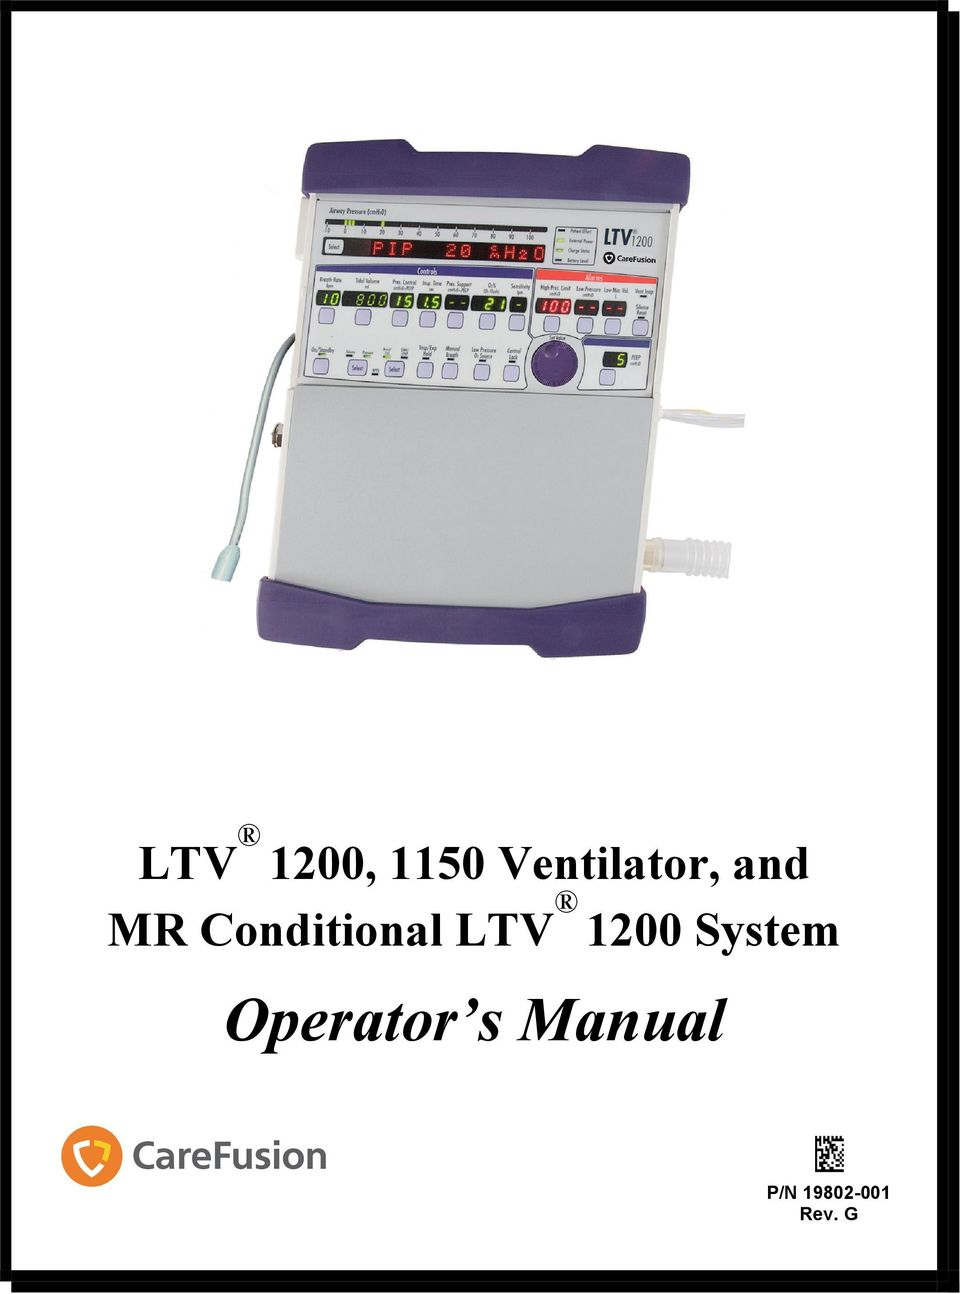 Conditional LTV 1200